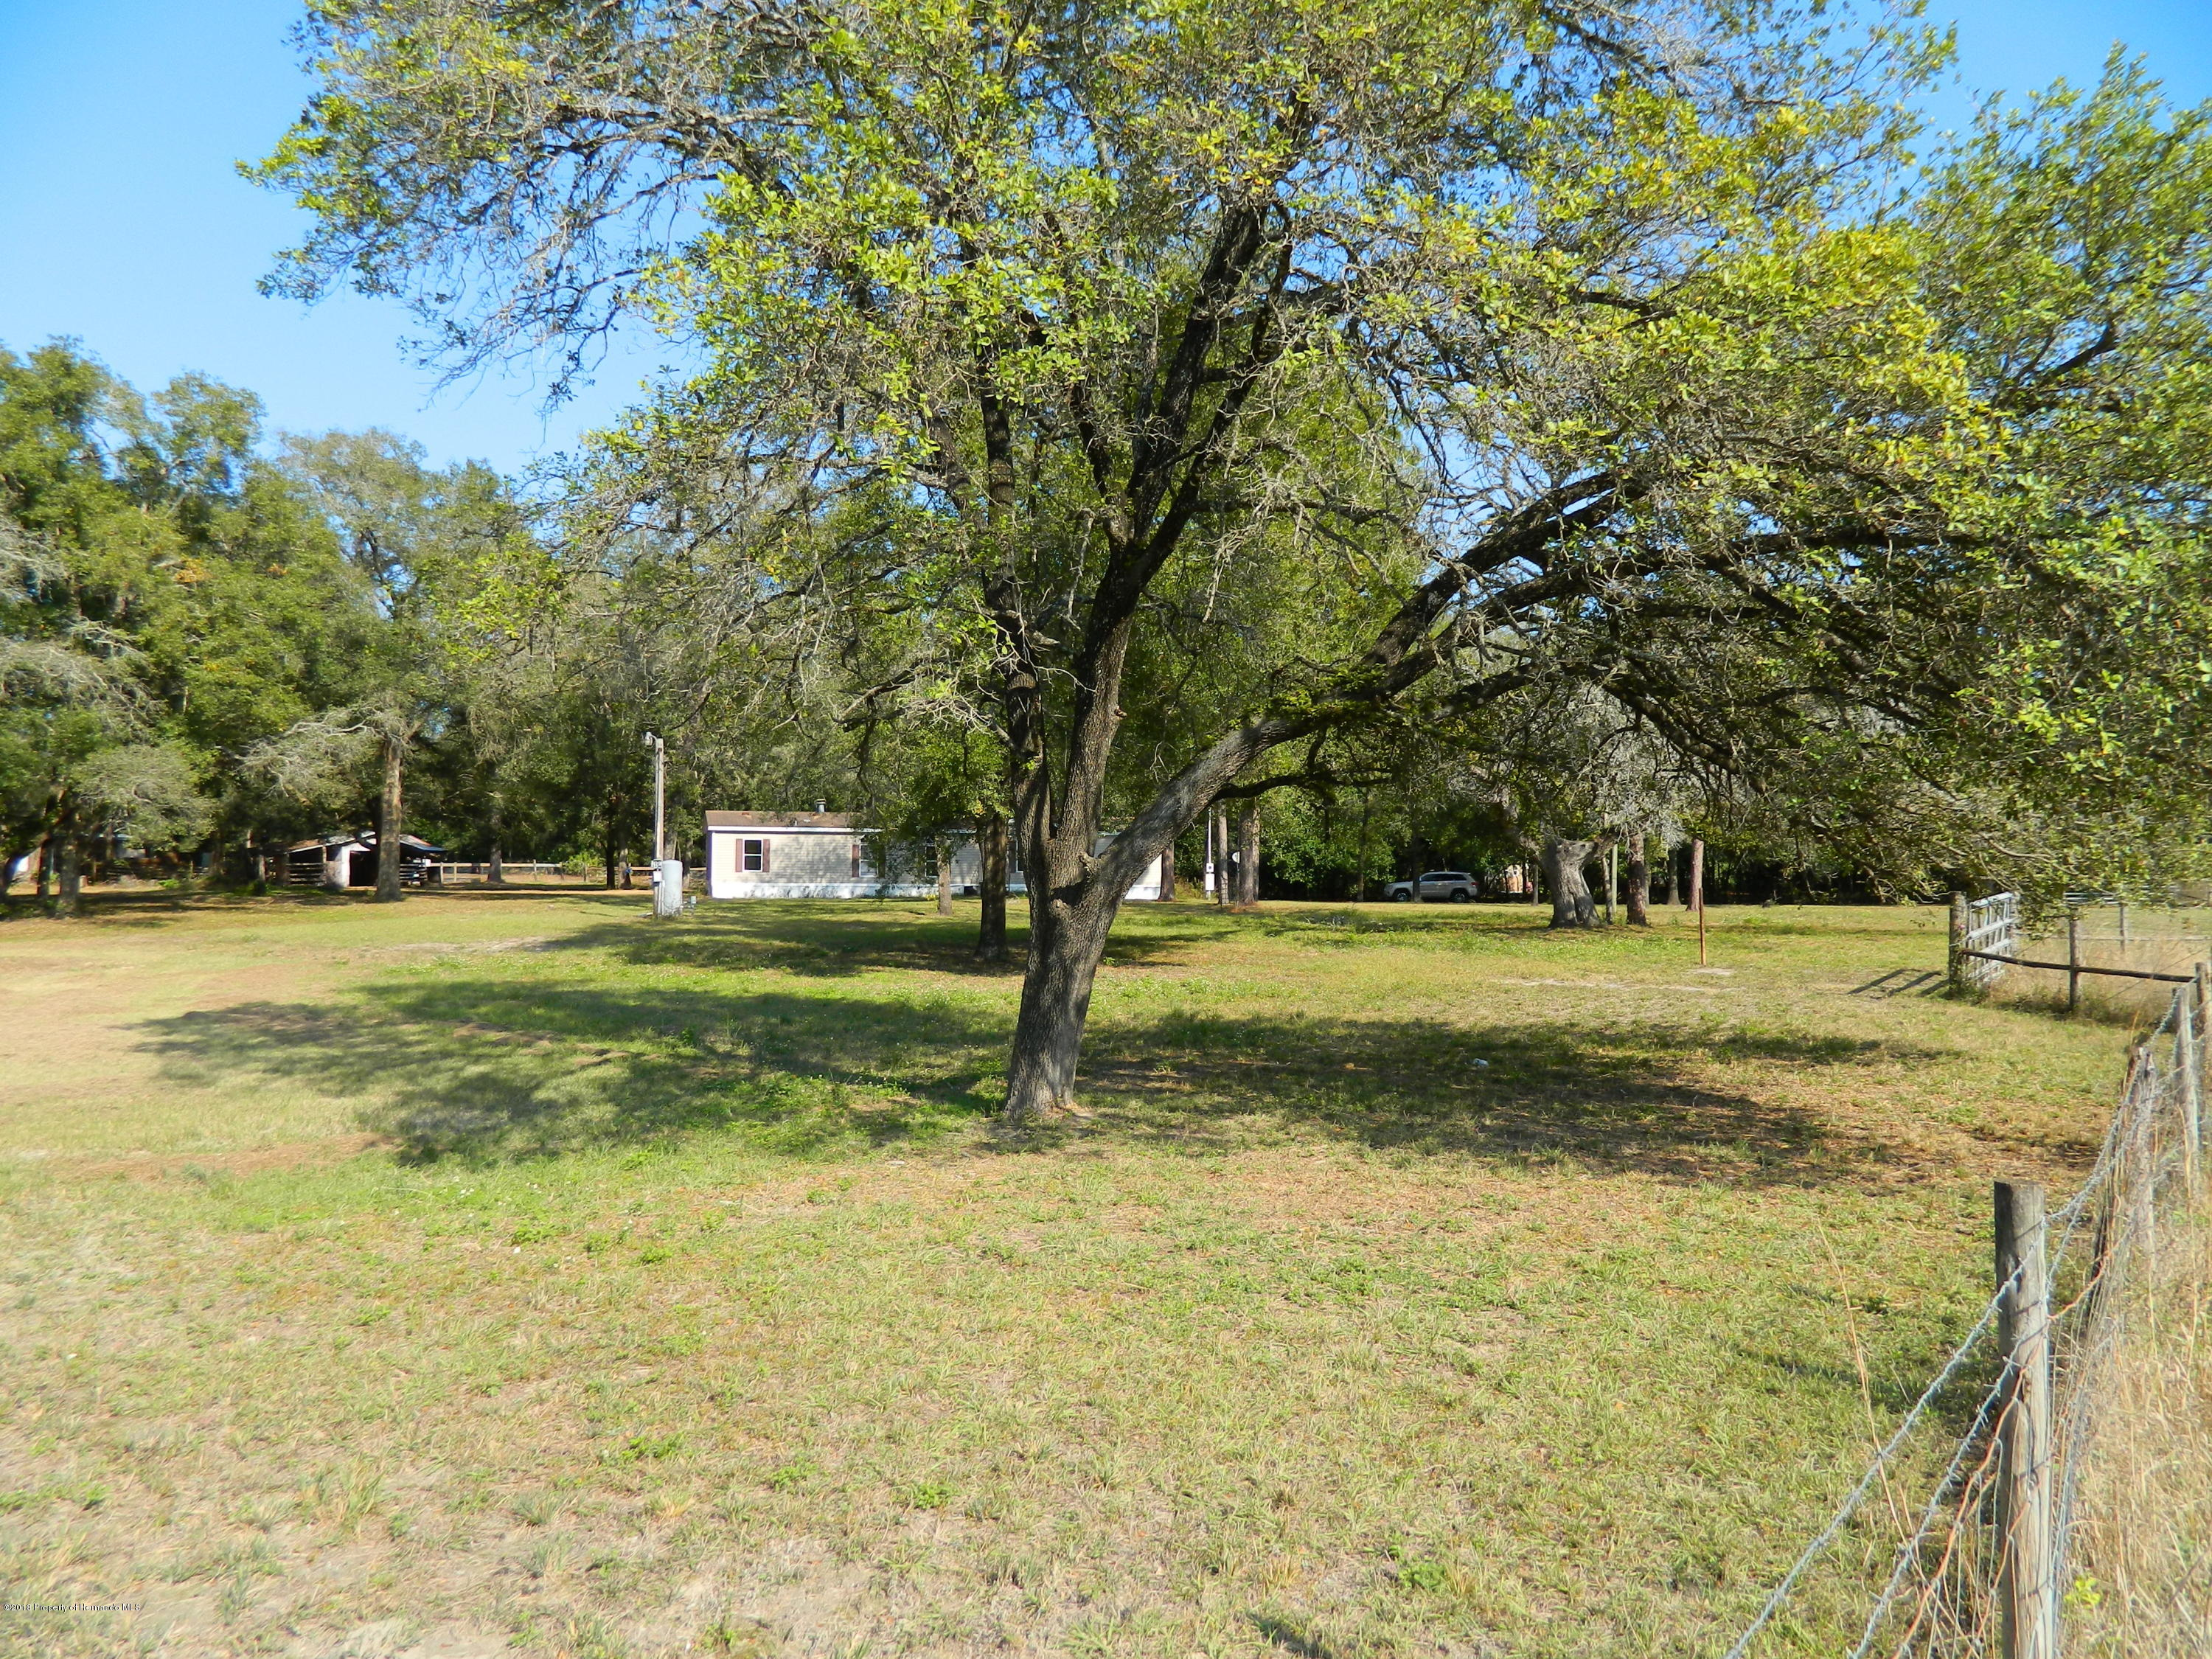 18020 Rigsby Road, Spring Hill(Pasco), Florida 34610, 3 Bedrooms Bedrooms, ,2 BathroomsBathrooms,Residential,For Sale,Rigsby,2197344